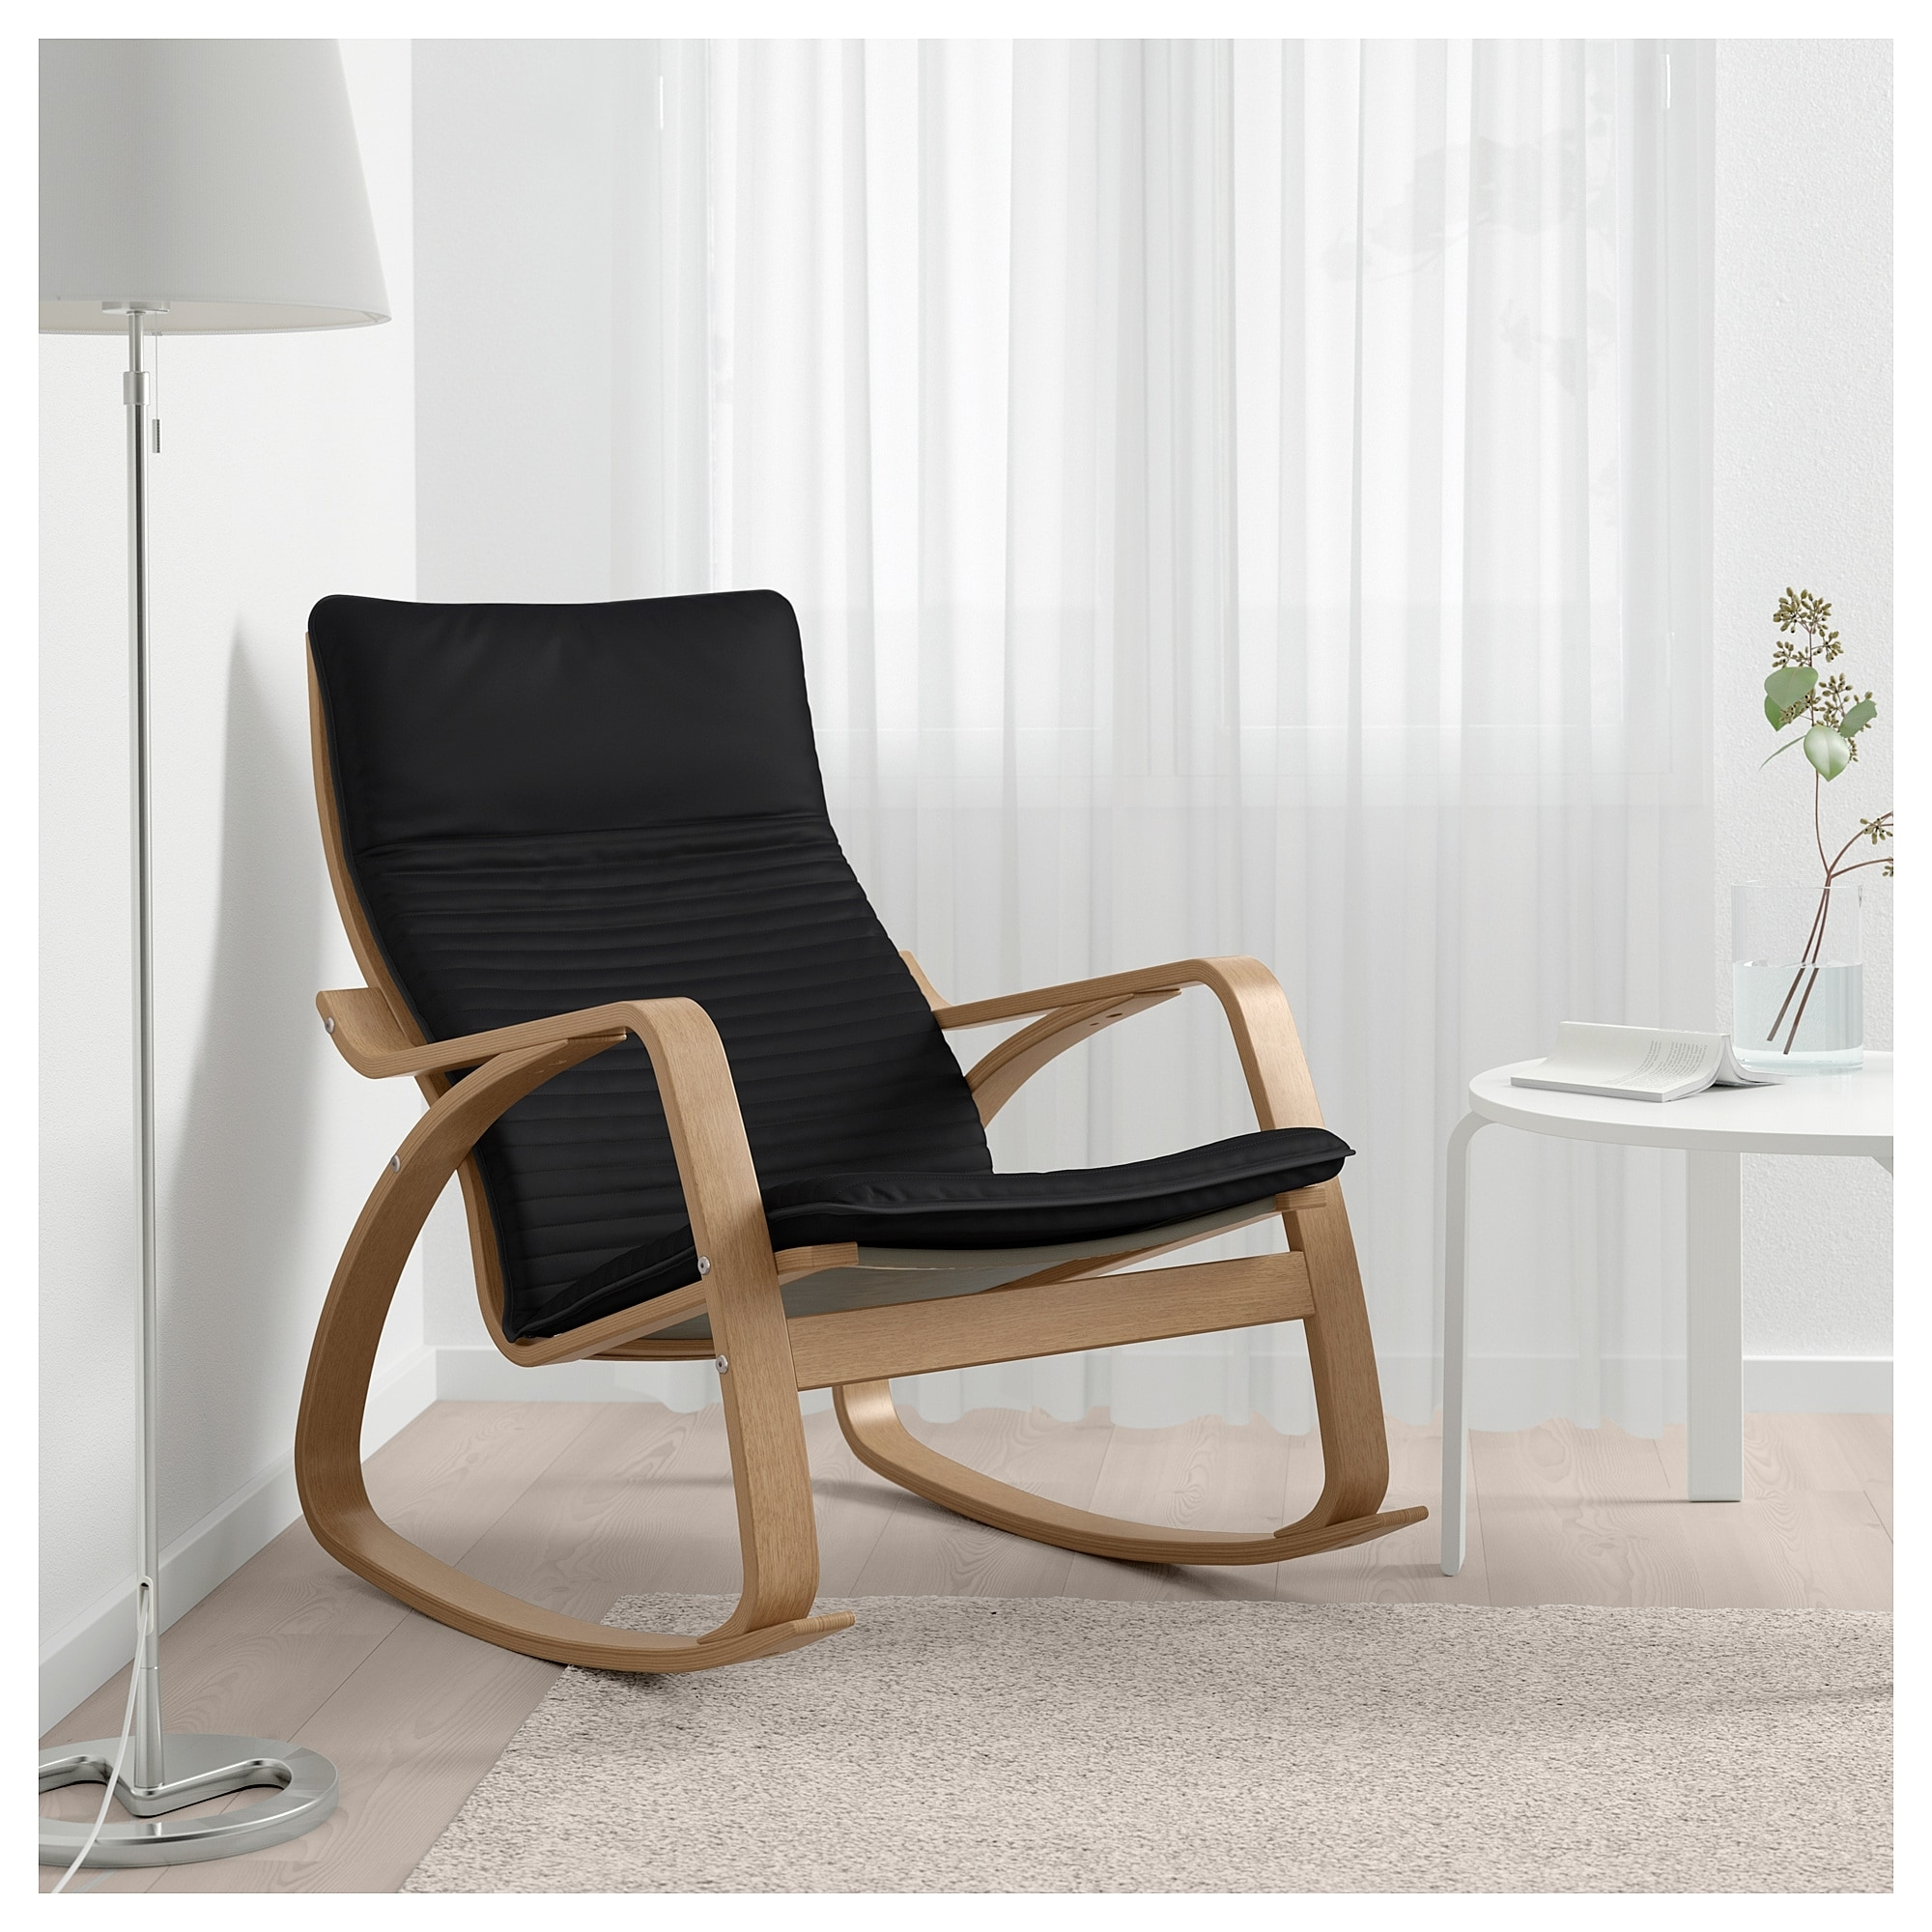 Most Recent Poäng Rocking Chair Oak Veneer/knisa Black – Ikea Throughout Ikea Rocking Chairs (View 8 of 15)